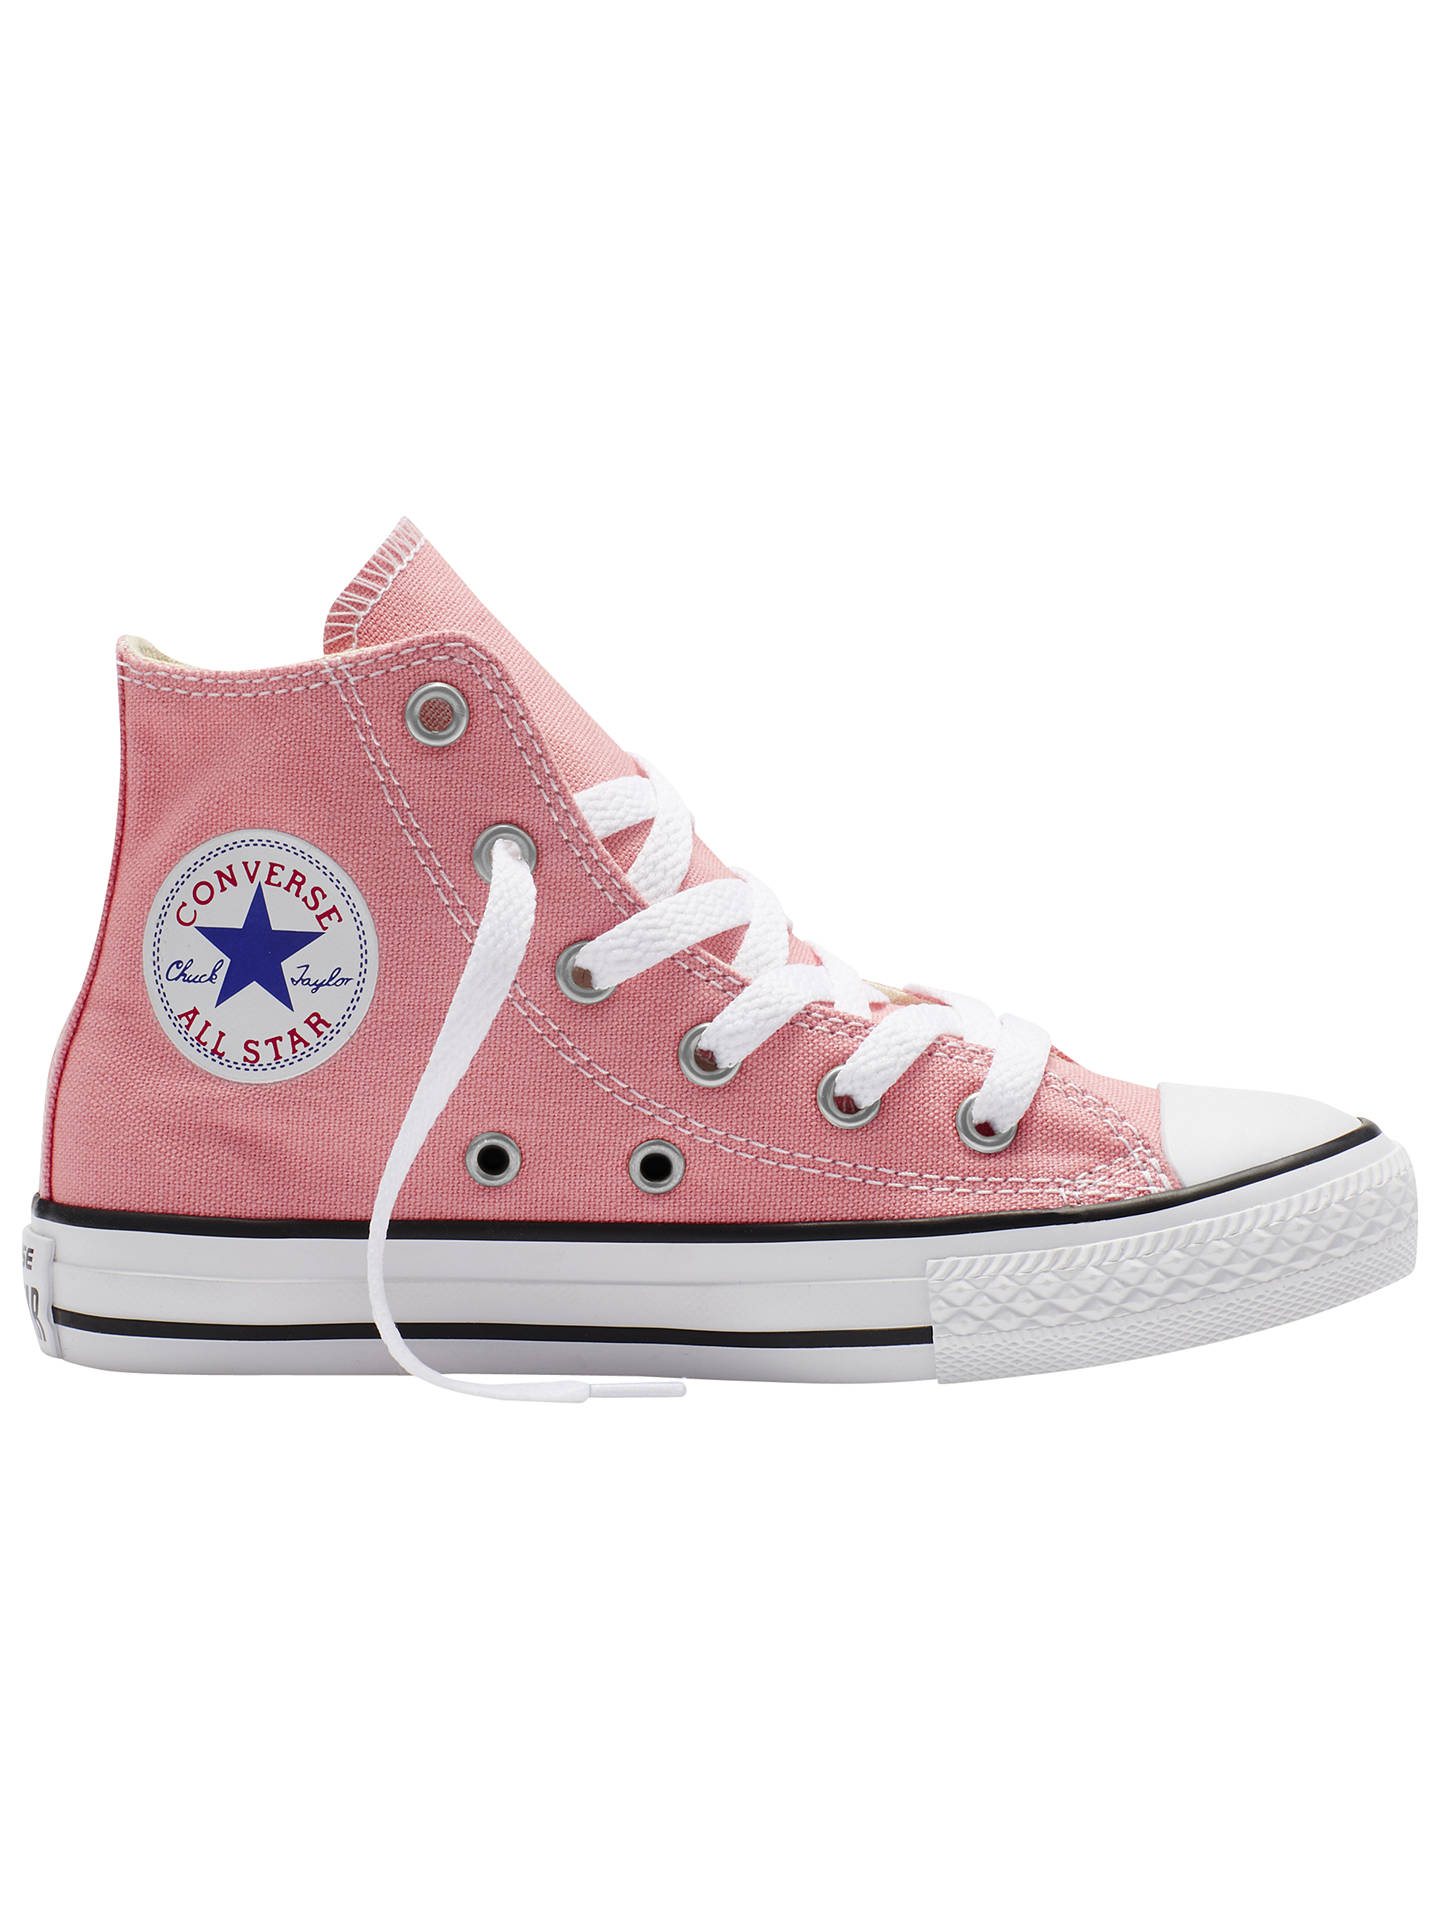 fb8d984d7c Buy Converse Children's Chuck Taylor All Star Classic High Top Shoes, Light  Pink, 10